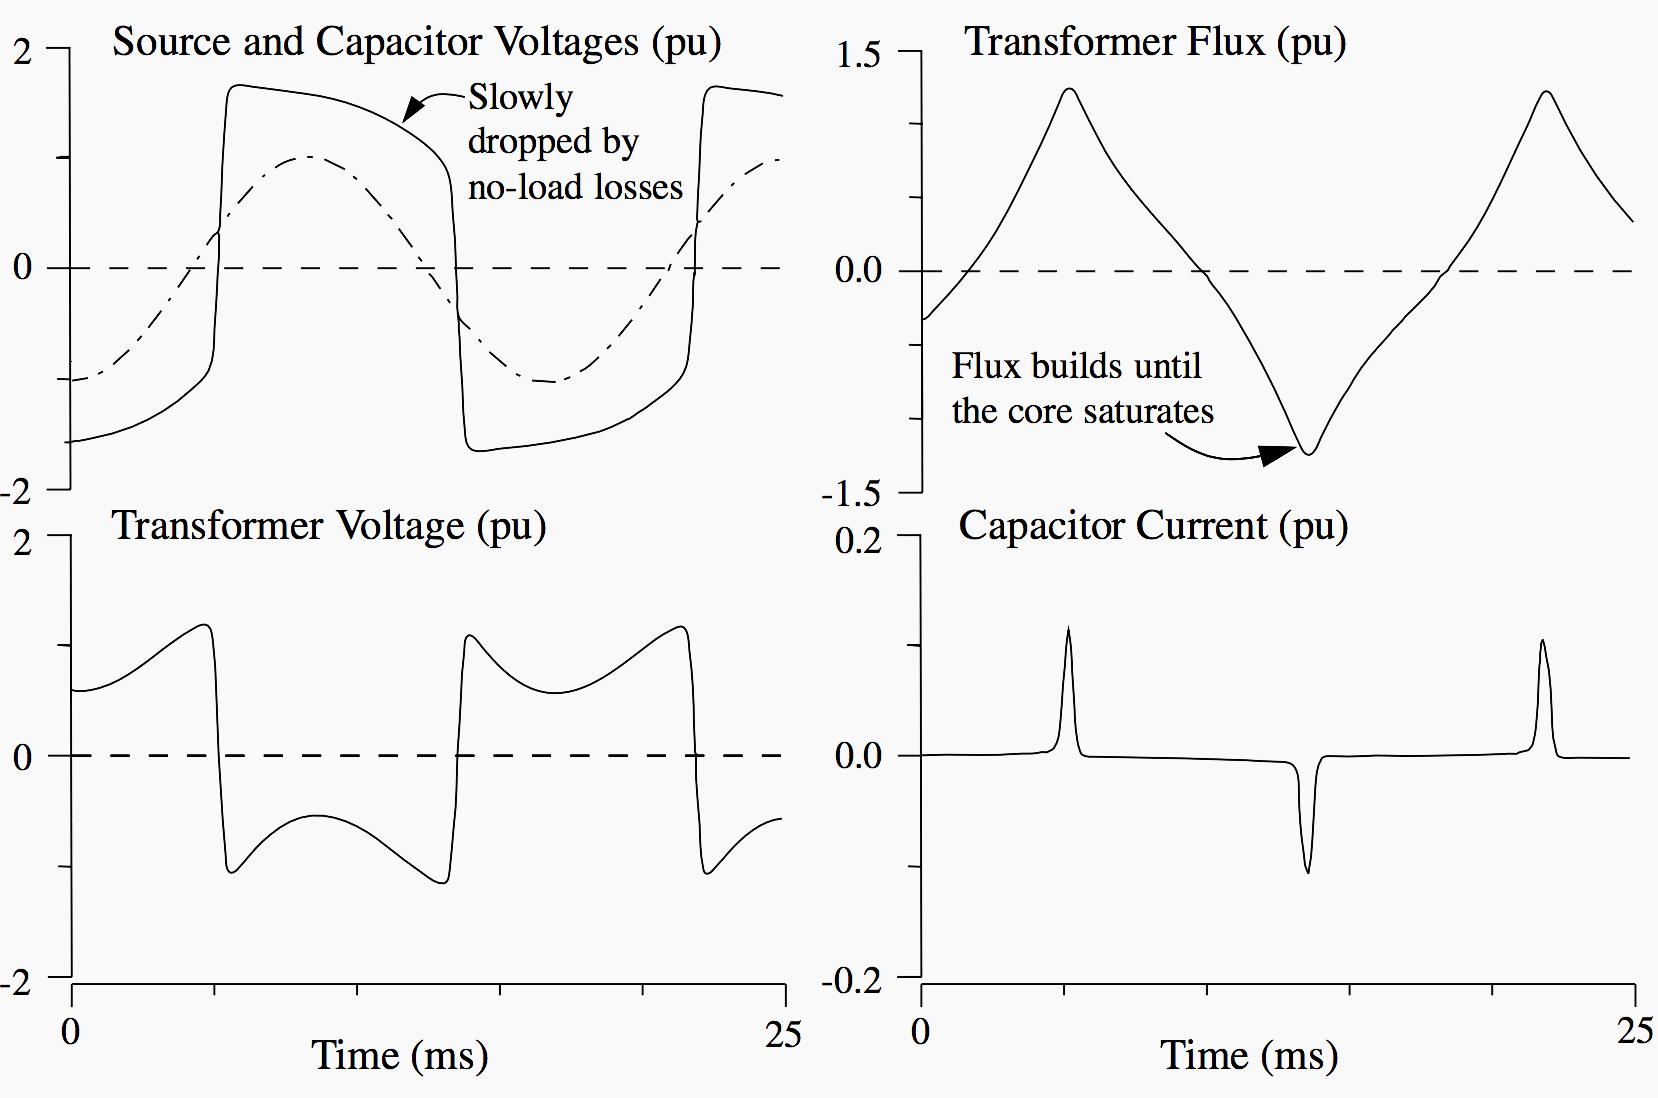 Voltages, currents and transformer flux during ferroresonance